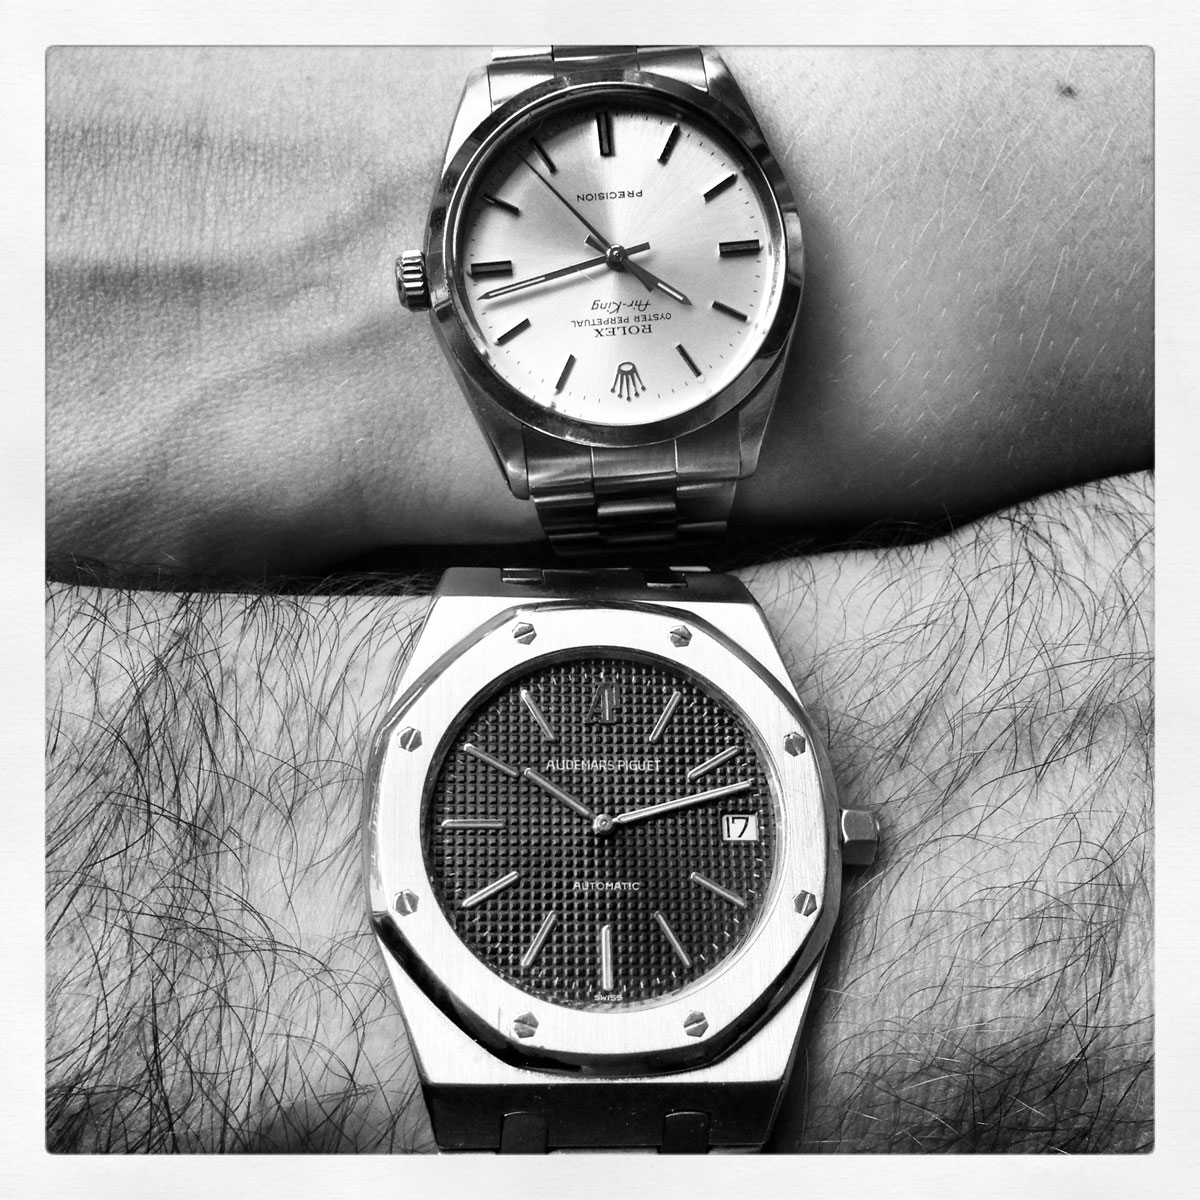 His & Hers - AP Royak & Rolex Airking